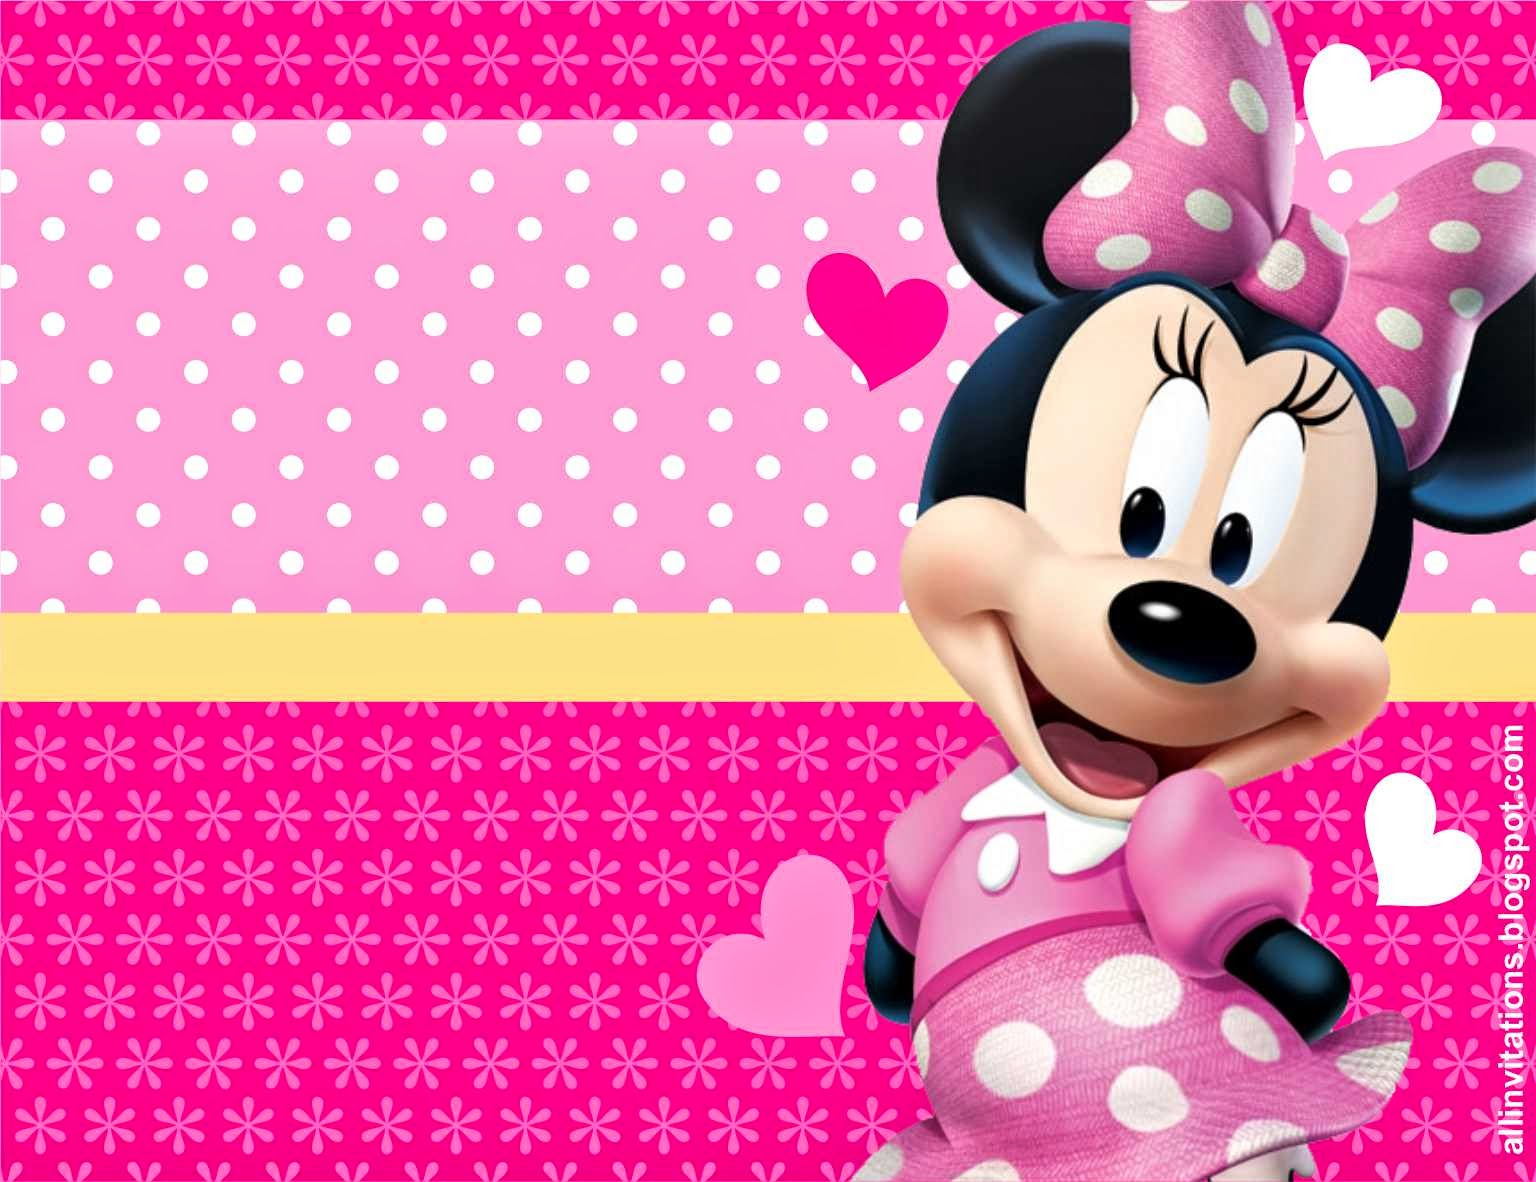 Minnie Mouse wallpapers, Cartoon, HQ Minnie Mouse pictures ...